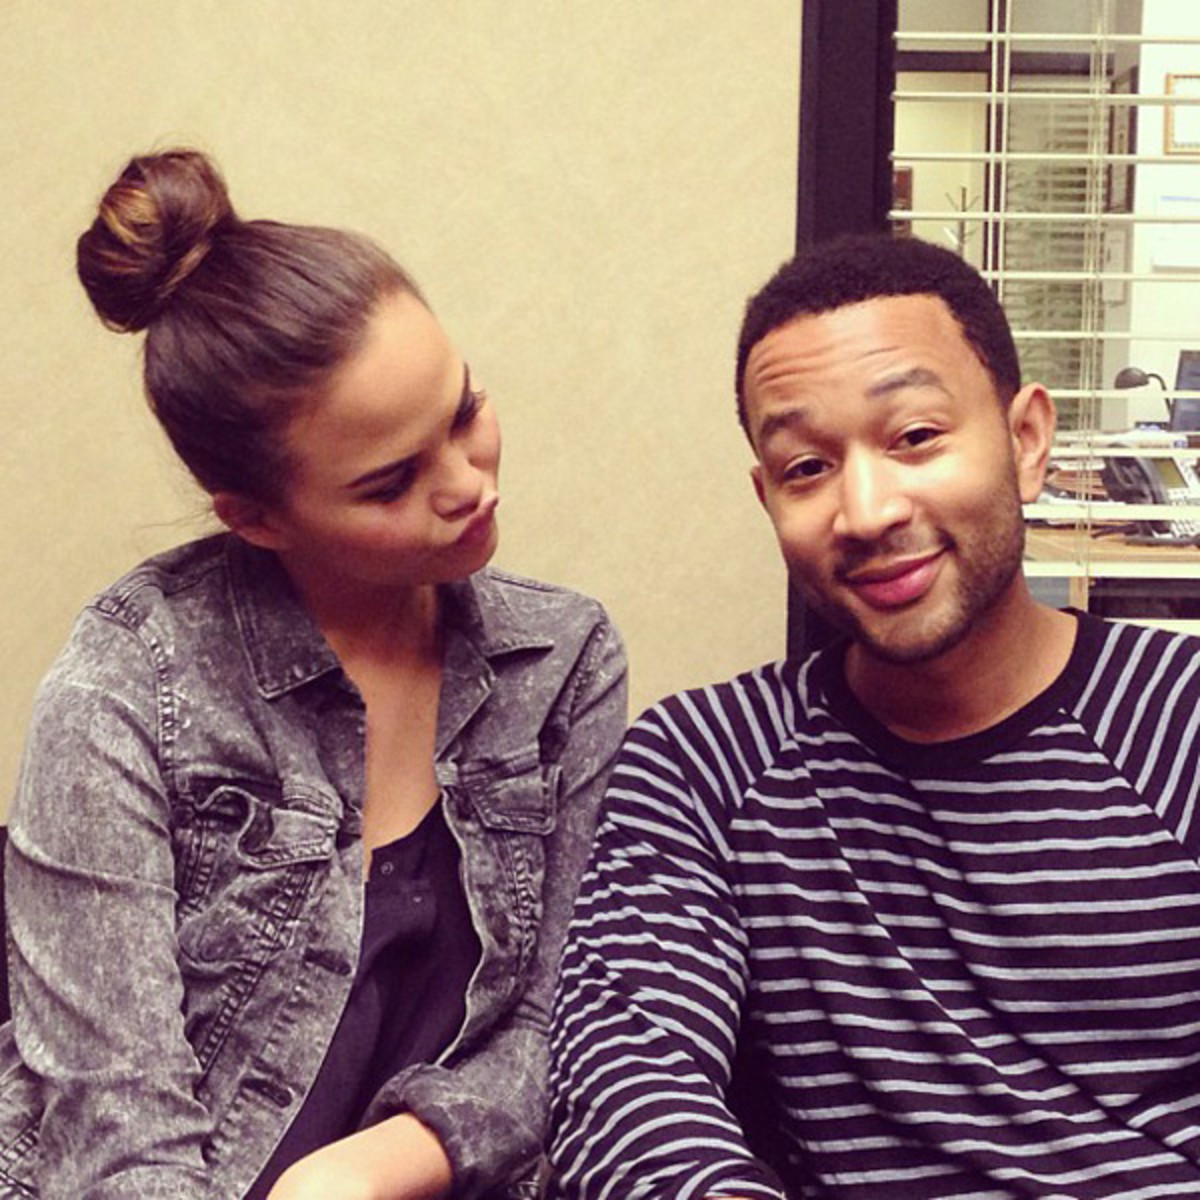 Chrissy Teigen and John Legend :: @chrissyteigen